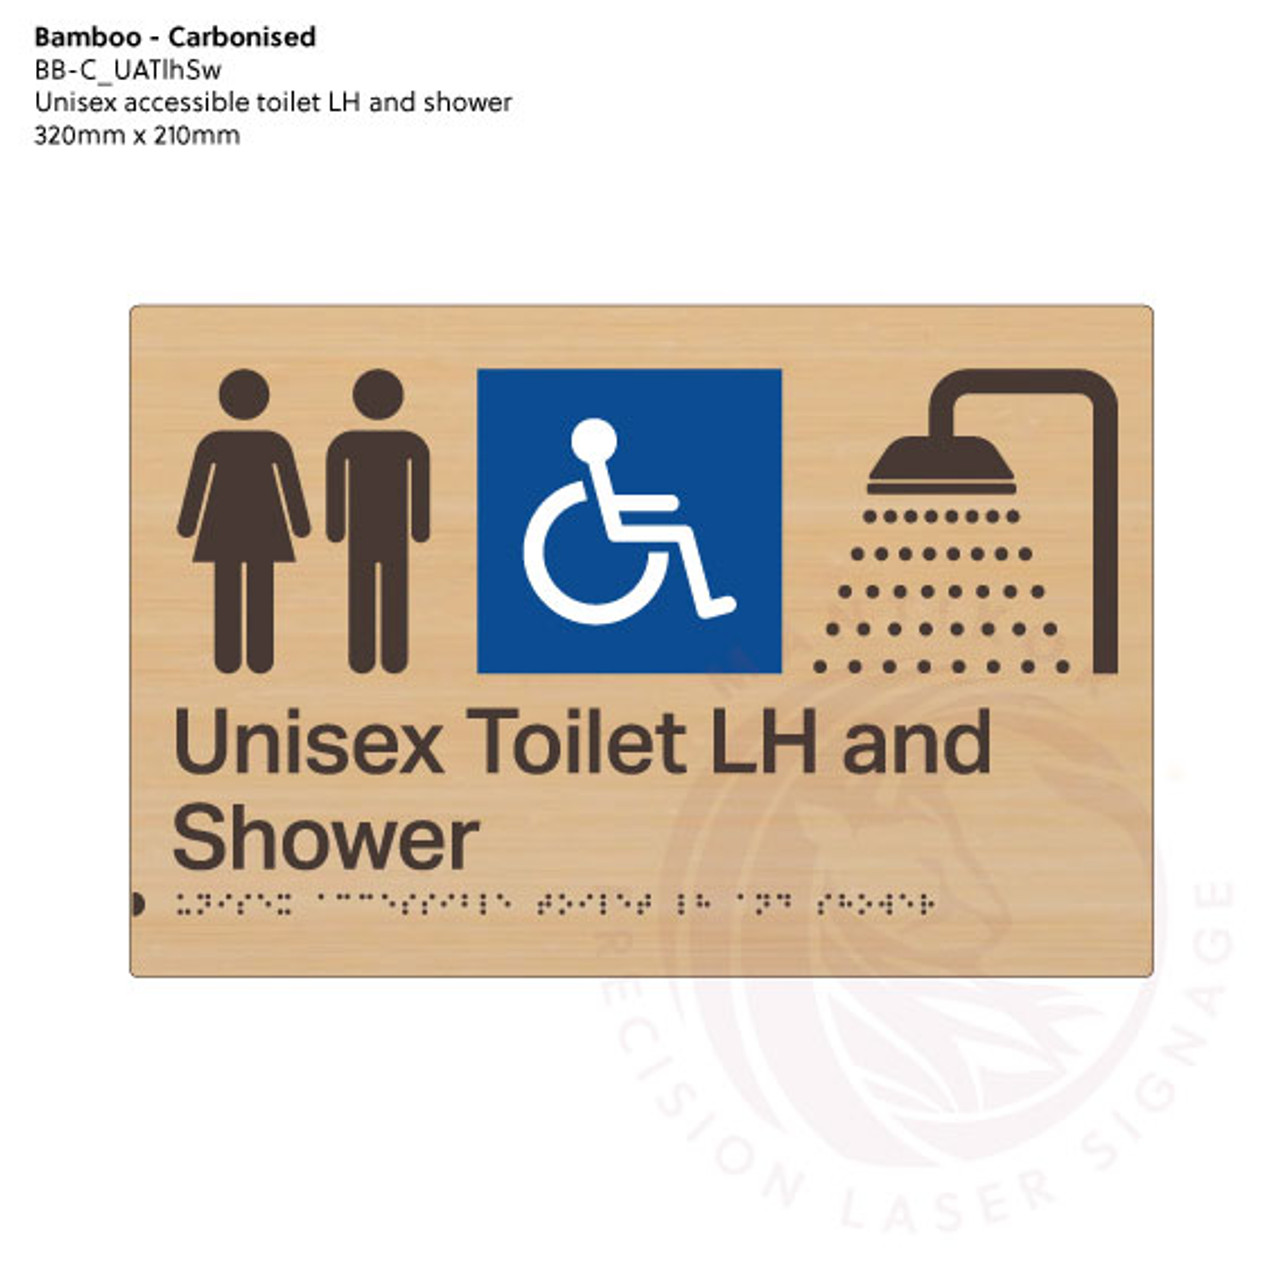 Carbonised Bamboo Tactile Braille Signs - Unisex Toilet LH and Shower